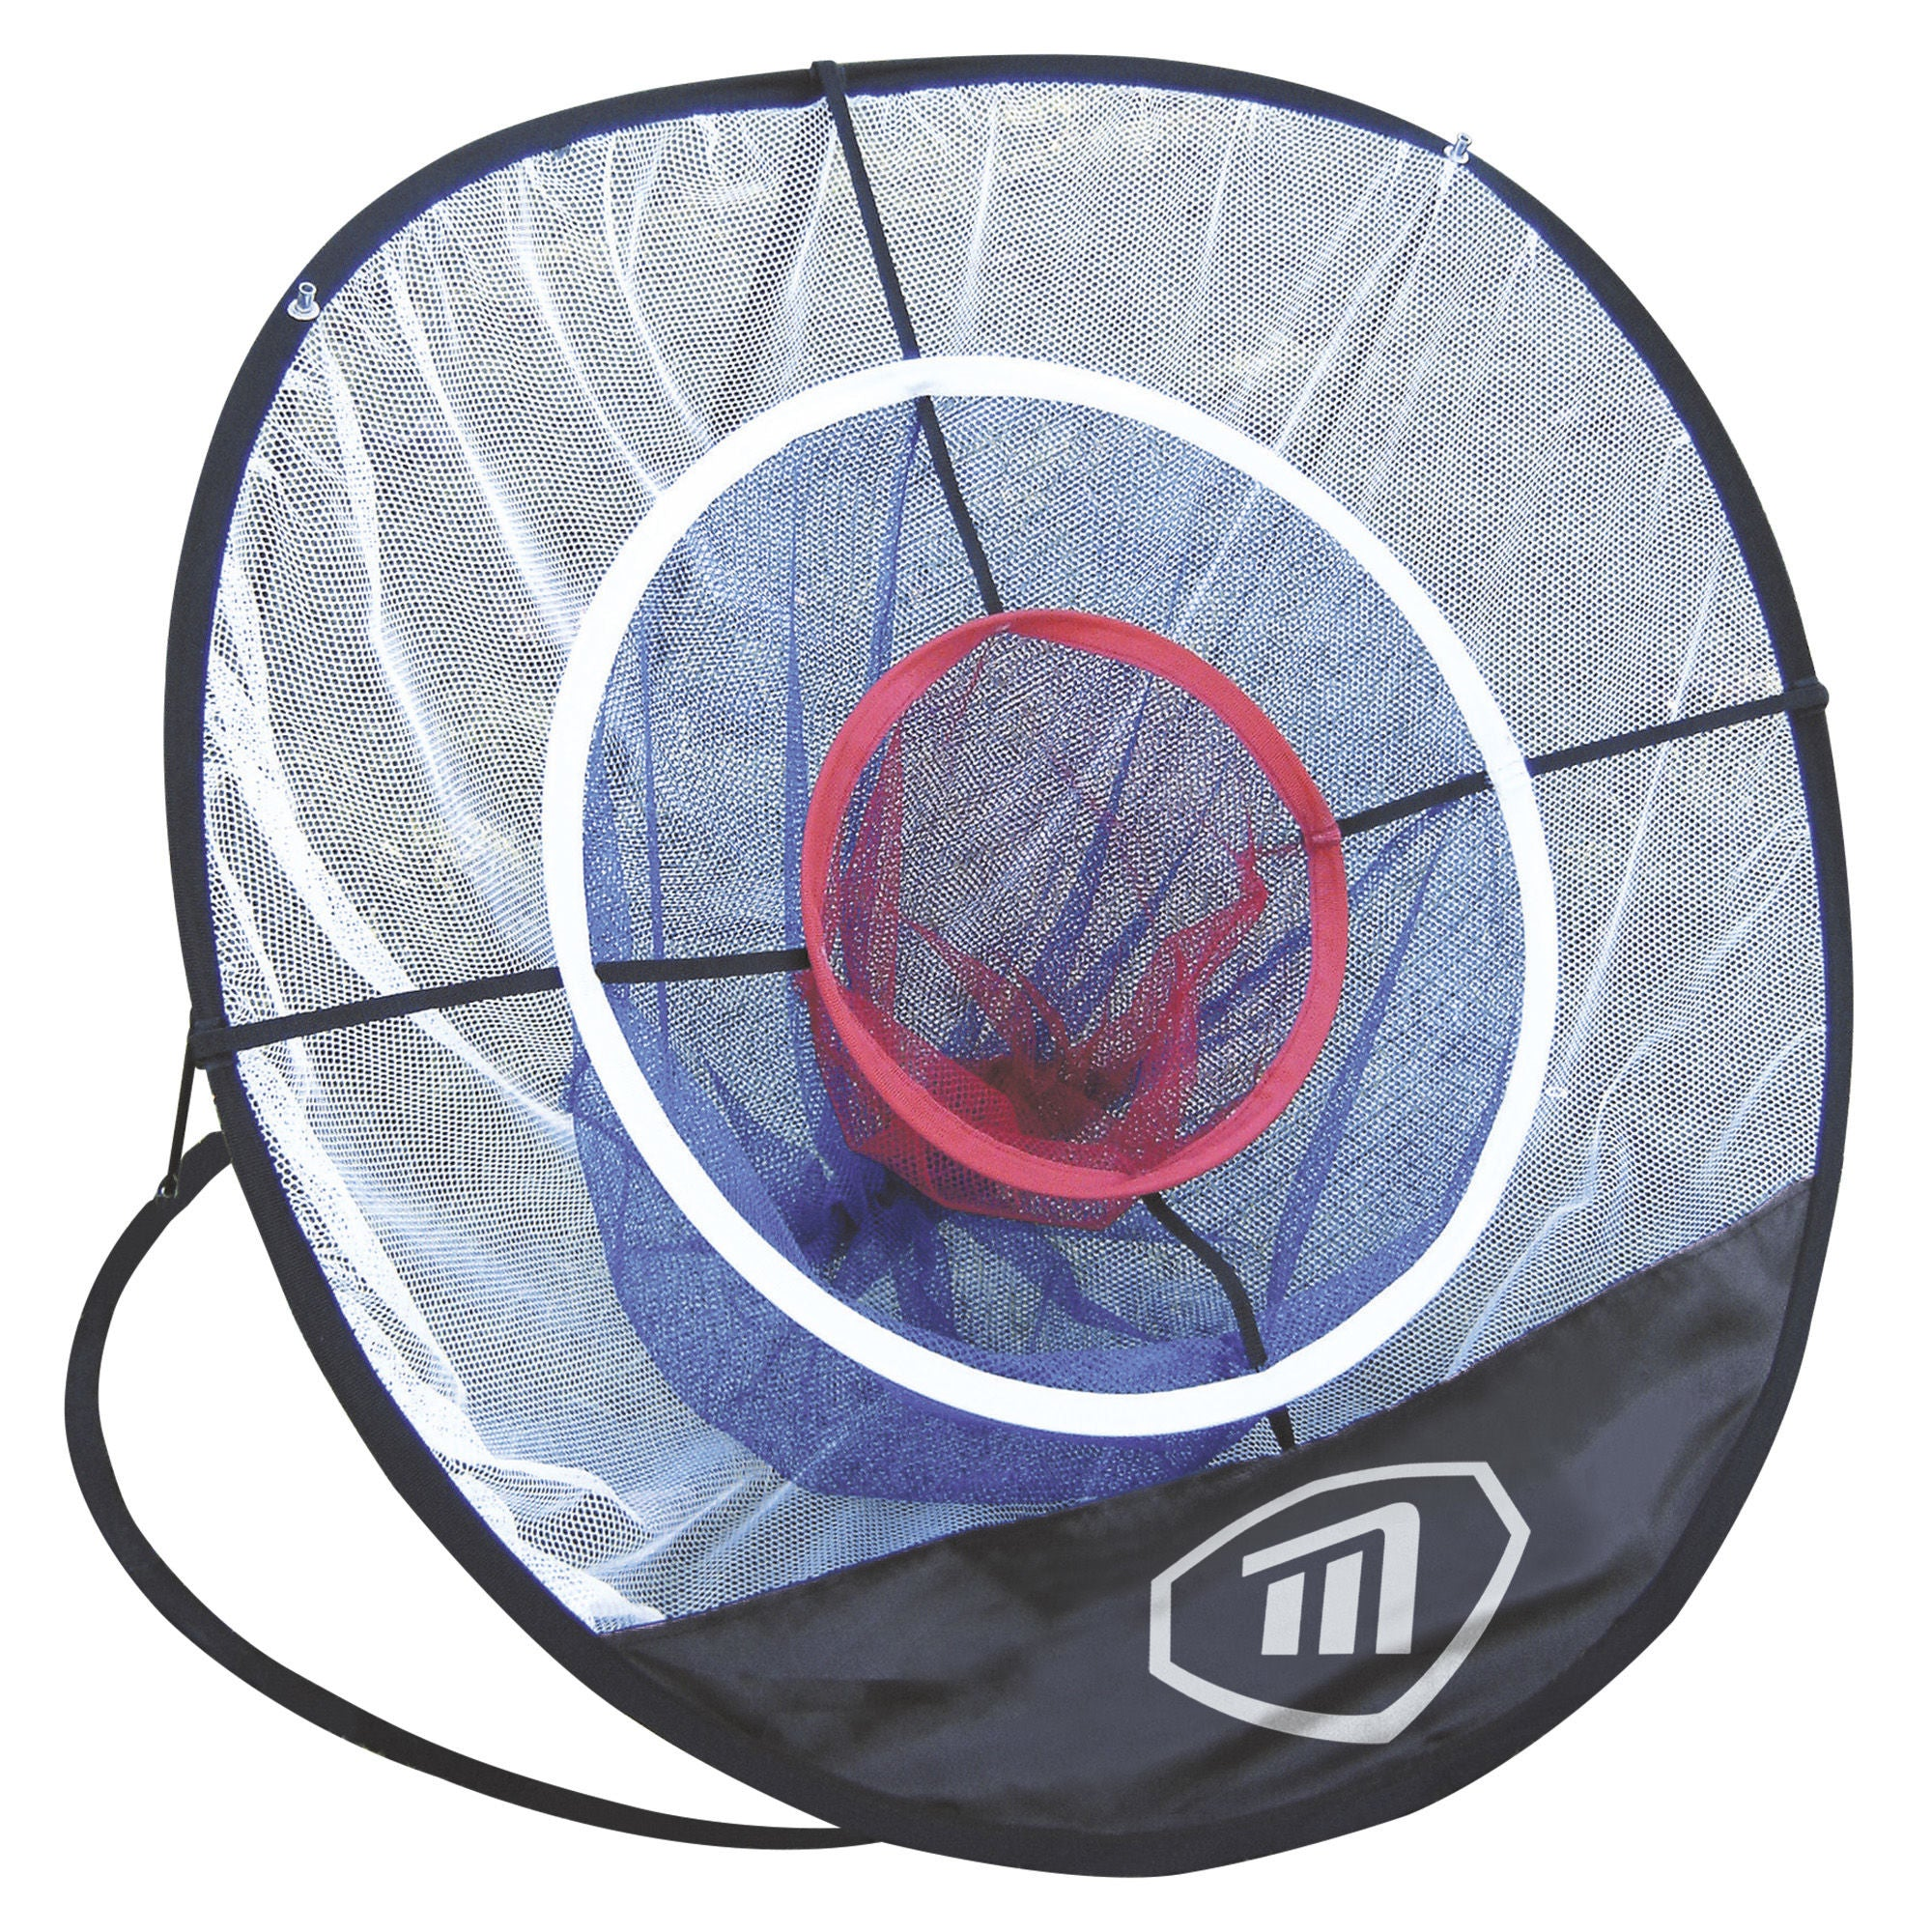 Pop Up Chipping Target Net